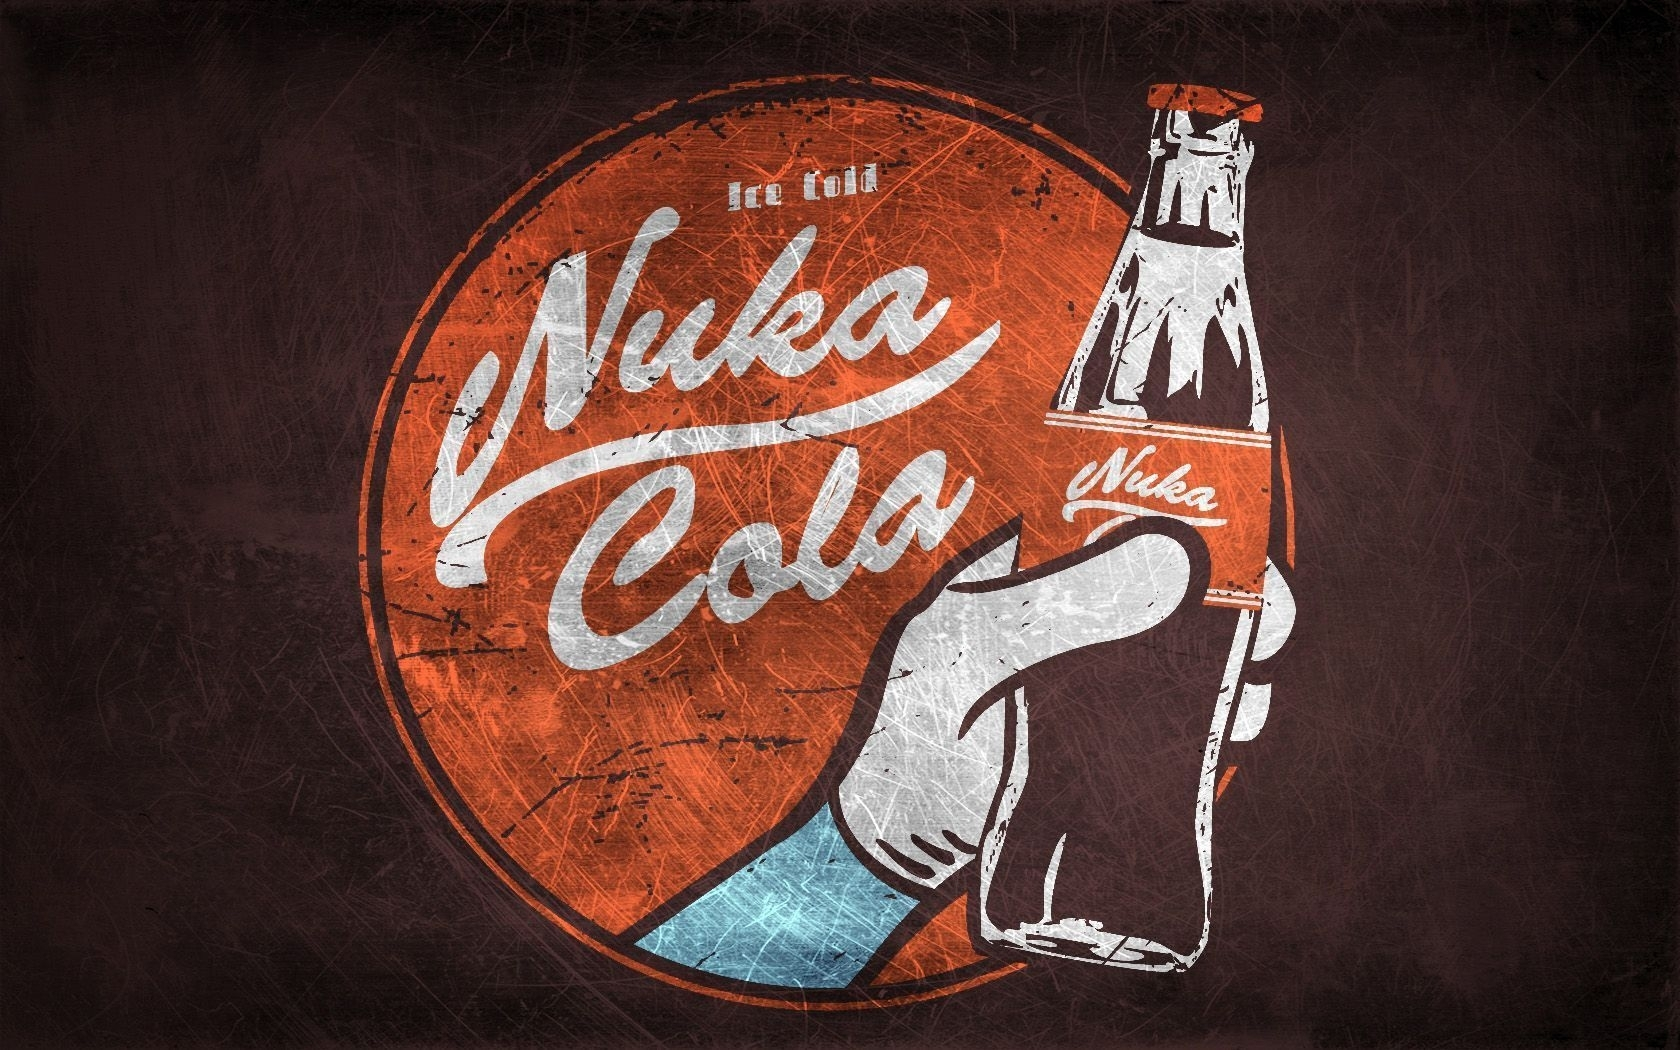 nuka cola wallpapers - wallpaper cave | adorable wallpapers